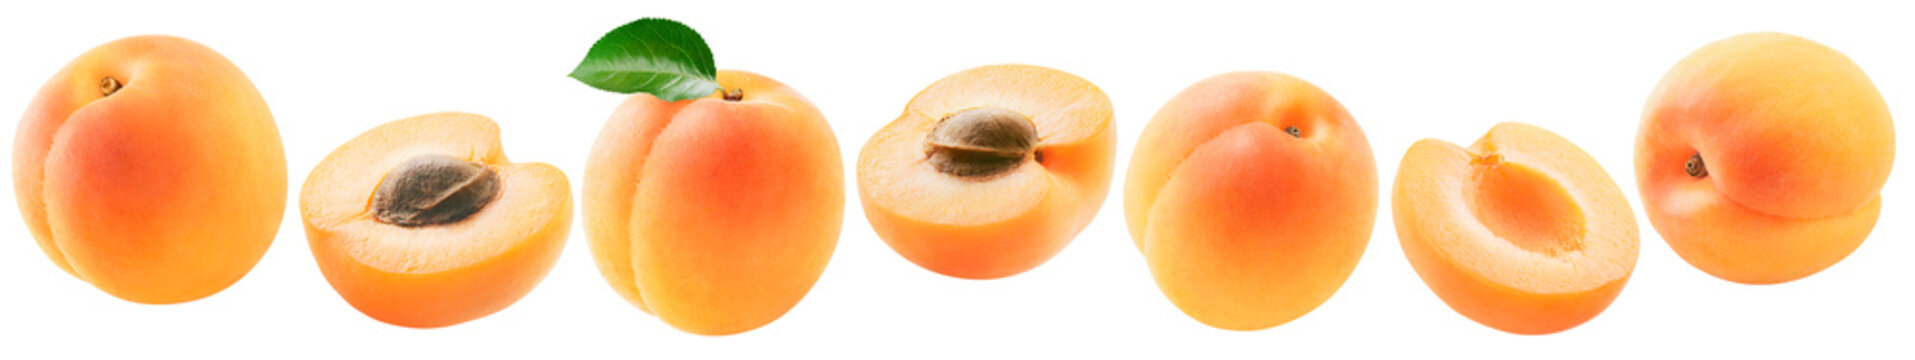 Fresh apricots set isolated on white background. Whole fruit, half pieces with and without pits.